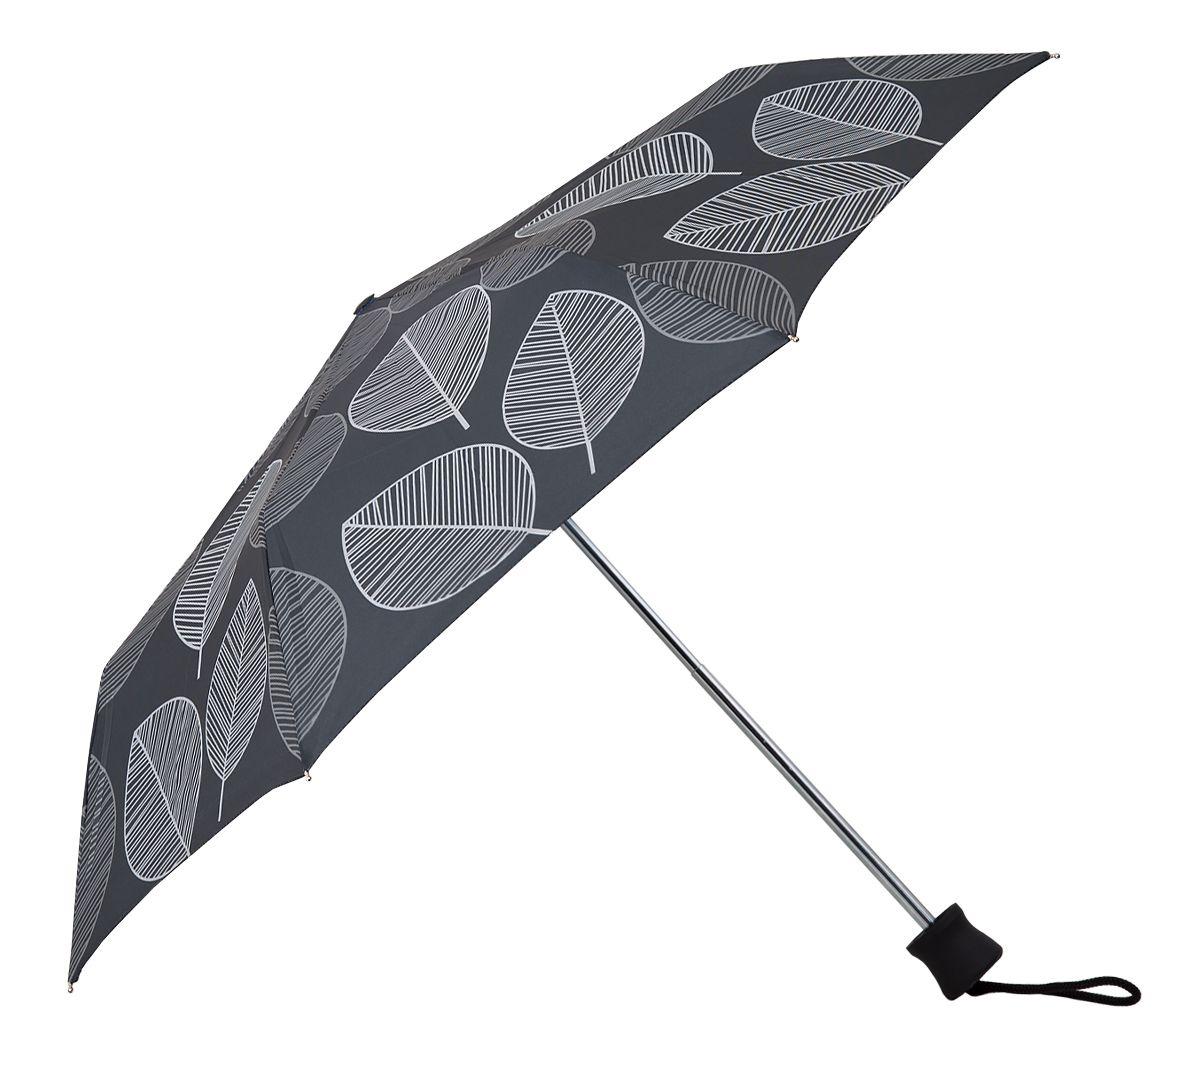 Stylish 3 Fold Umbrella